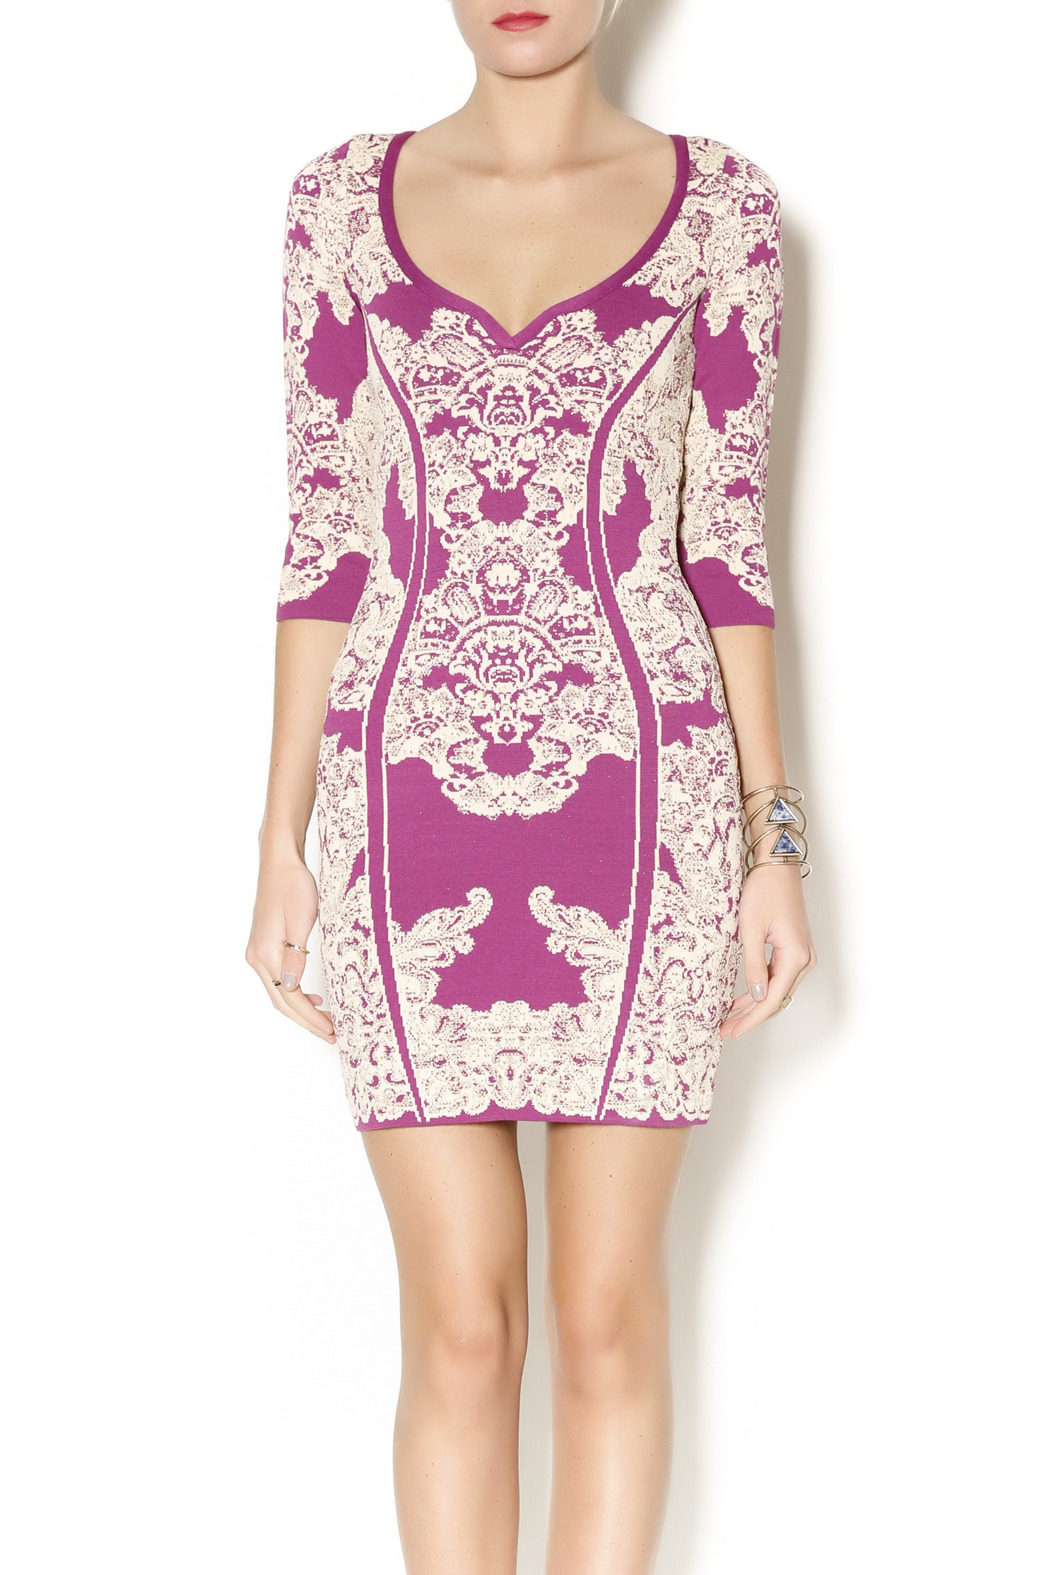 Wow Couture Damask Body Con Dress - Main Image